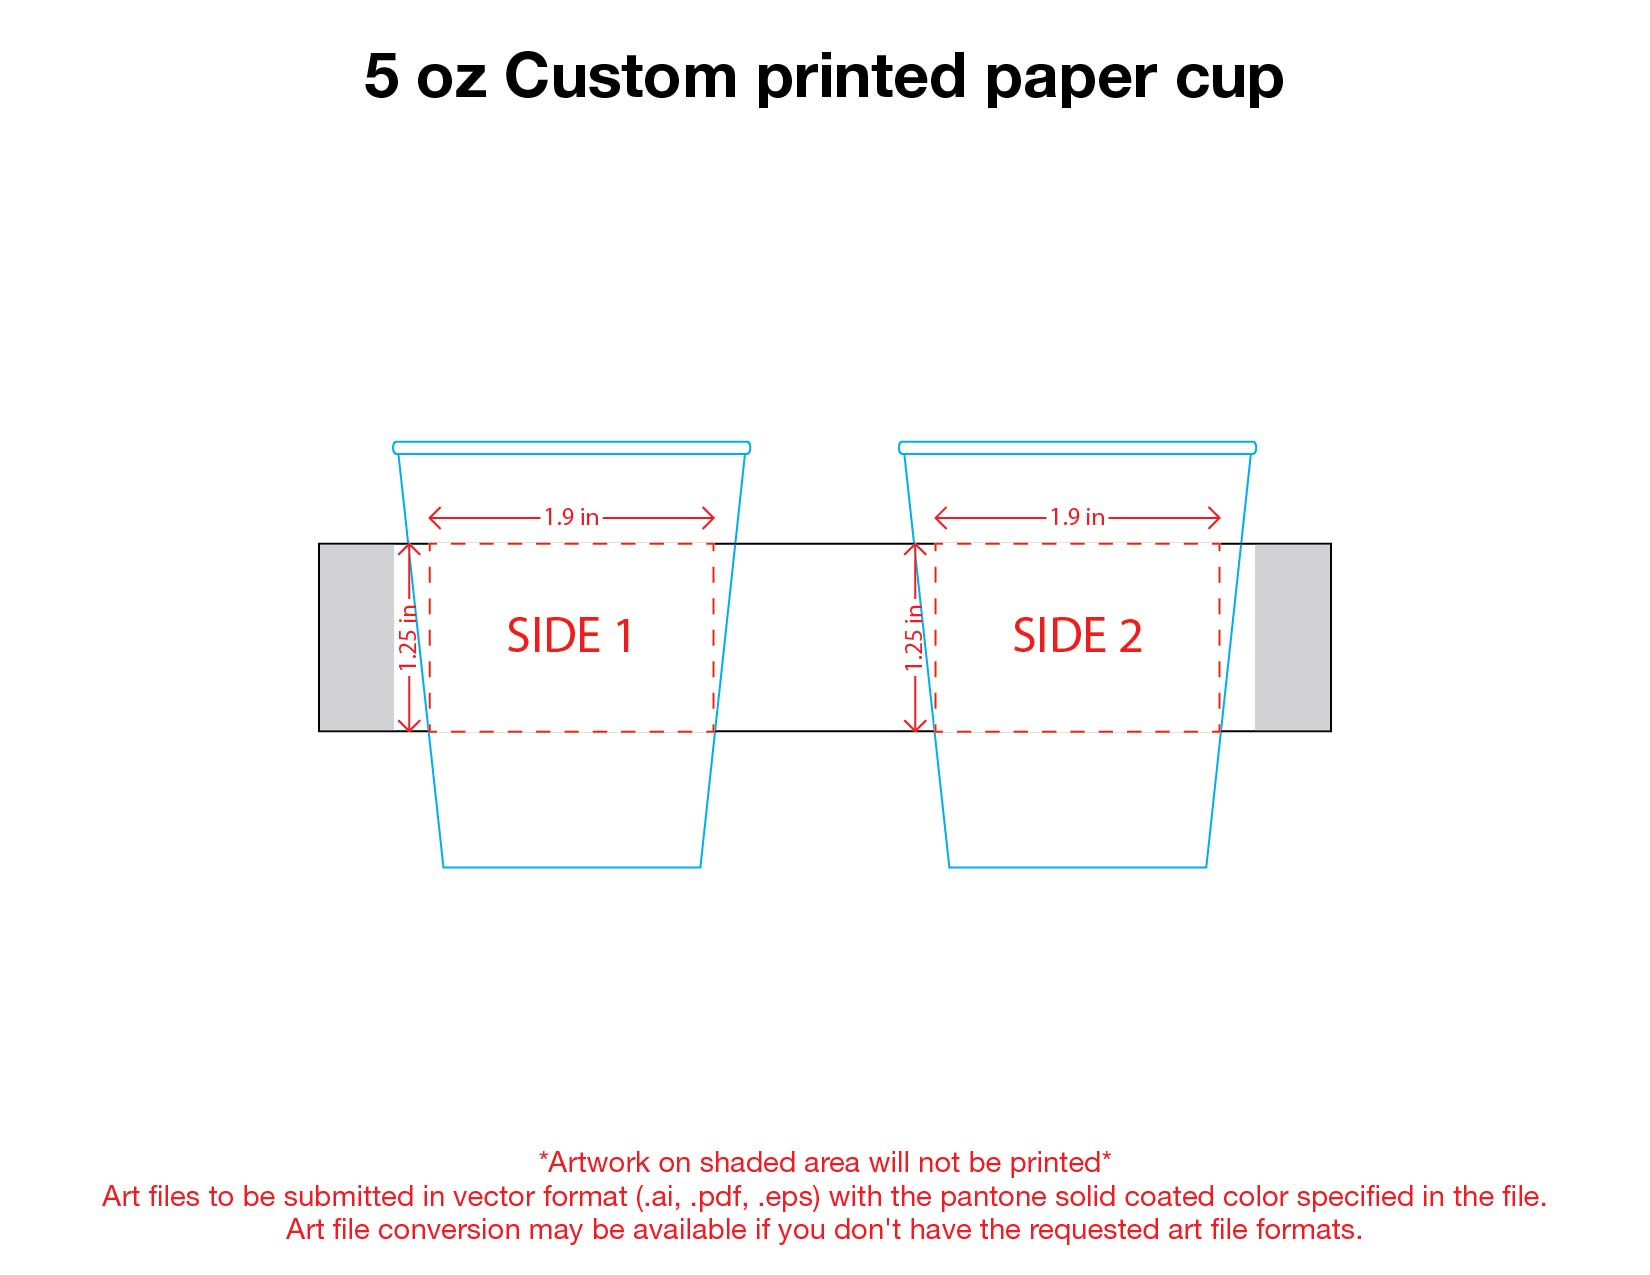 5 oz. Custom Printed Recyclable Paper